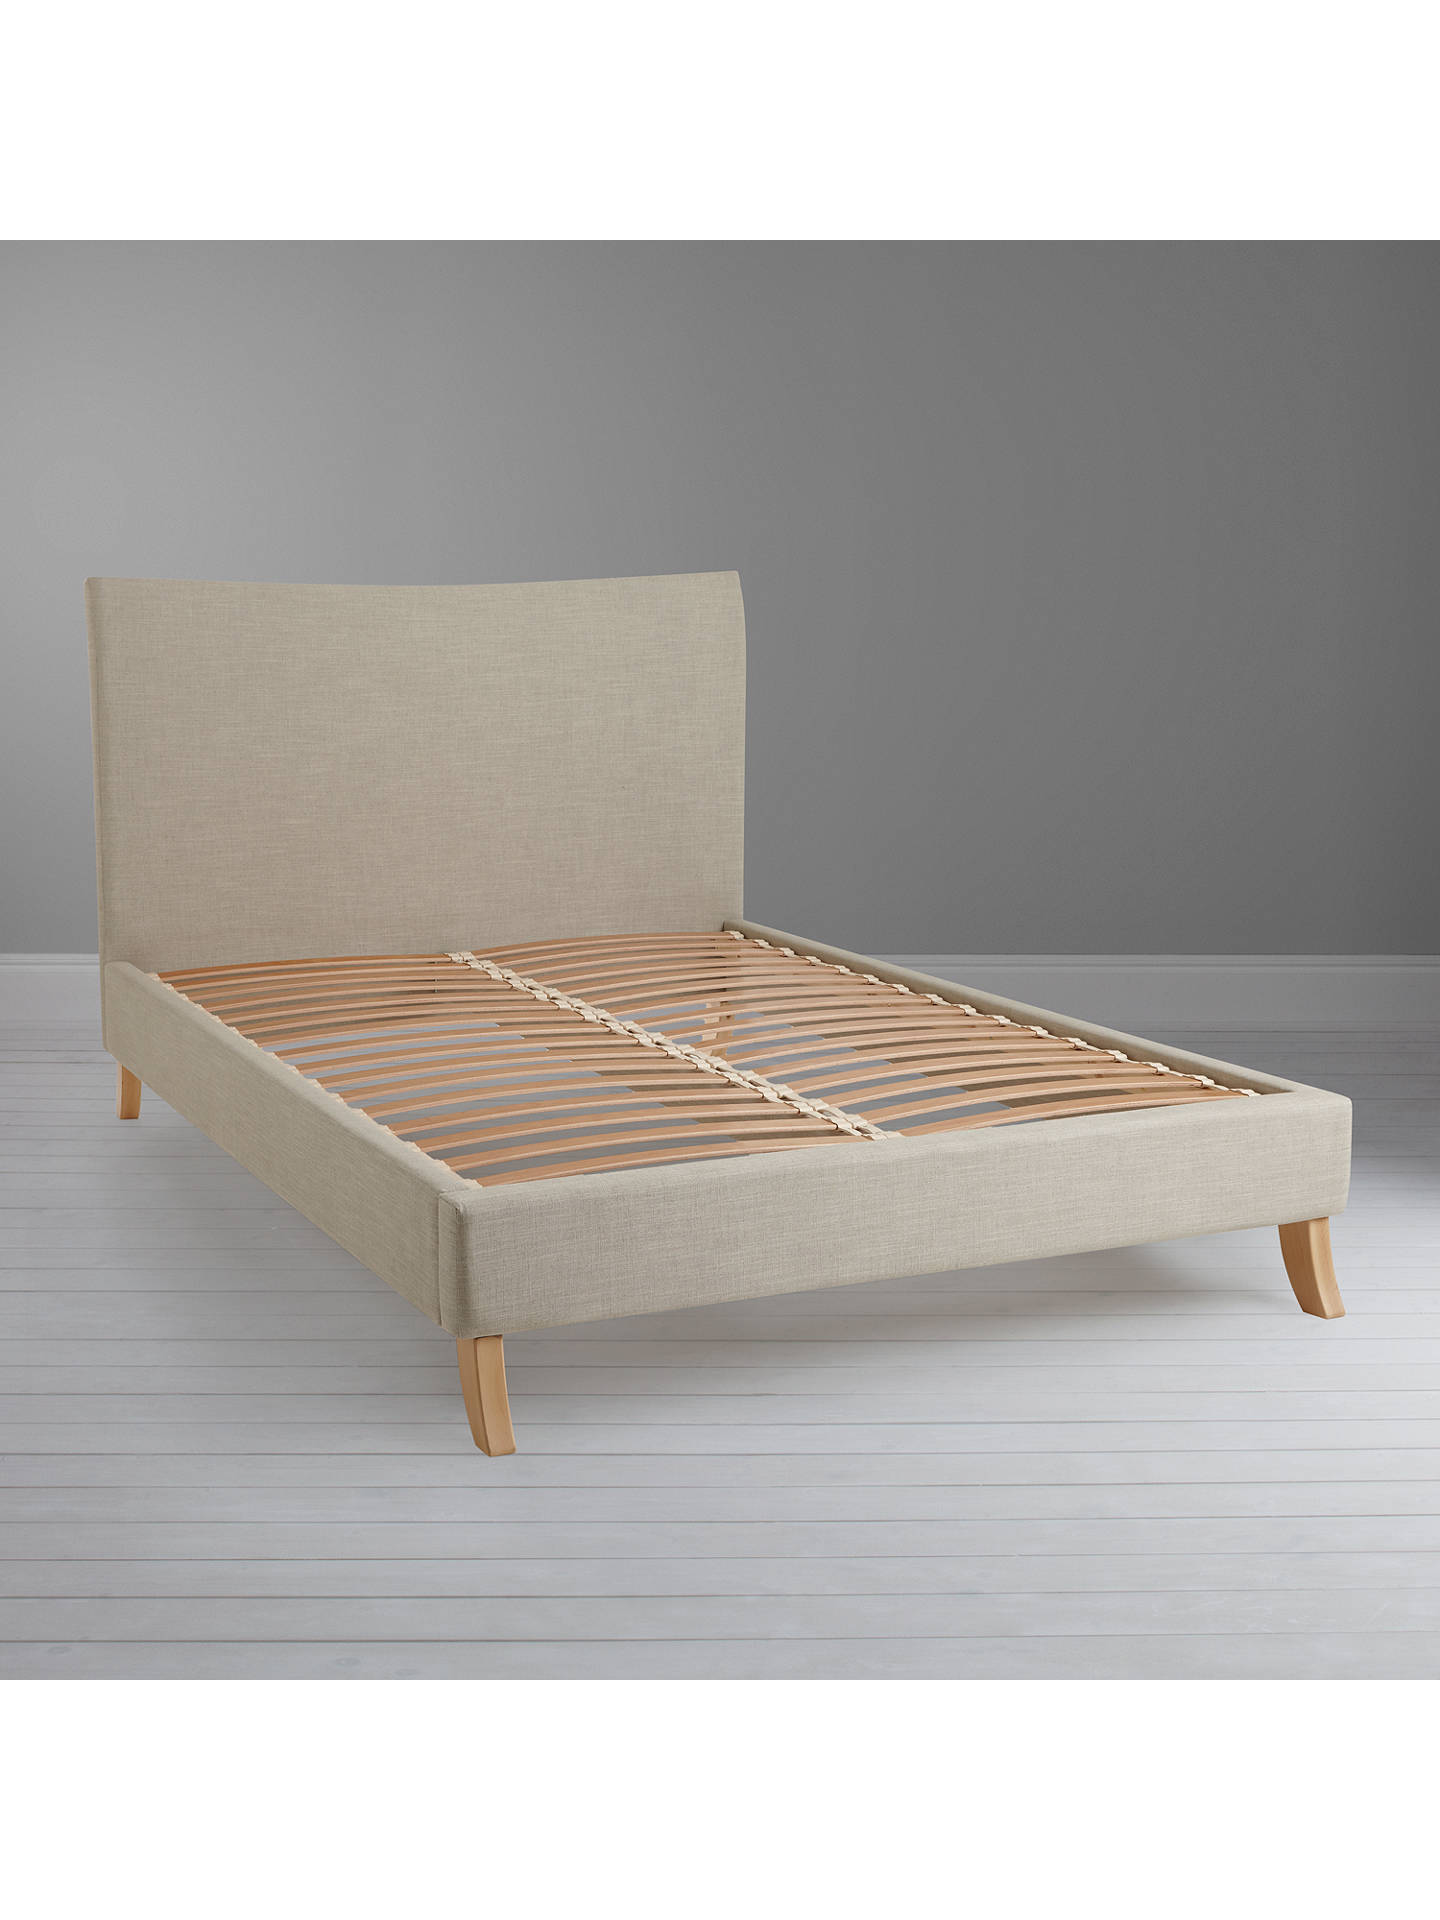 BuyJohn Lewis & Partners Lincoln Low End Bed Frame, King Size, Naomi Linen Online at johnlewis.com